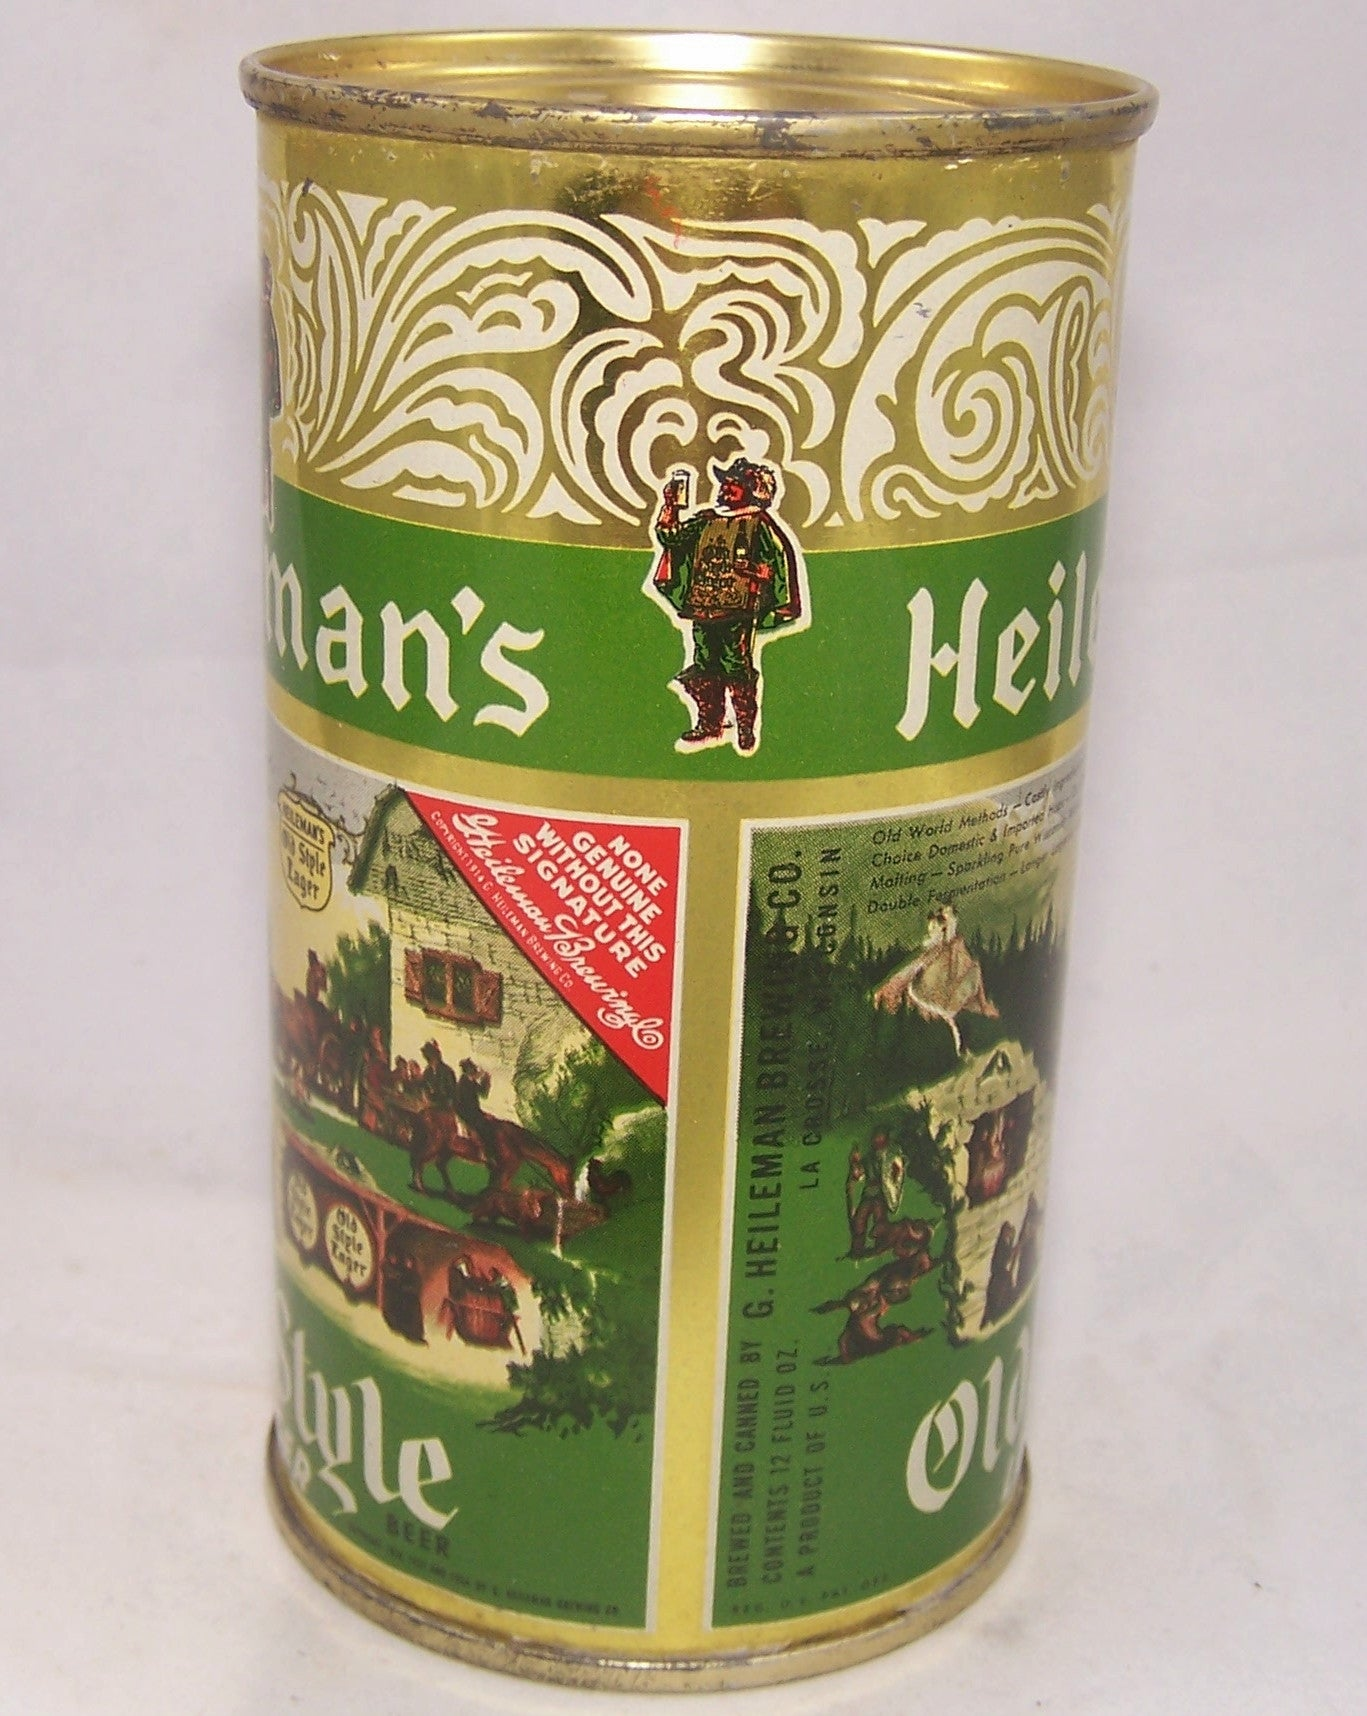 Heileman's Old Style Lager Beer USBC 108-14, Grade A1+ Sold on 12/18/16